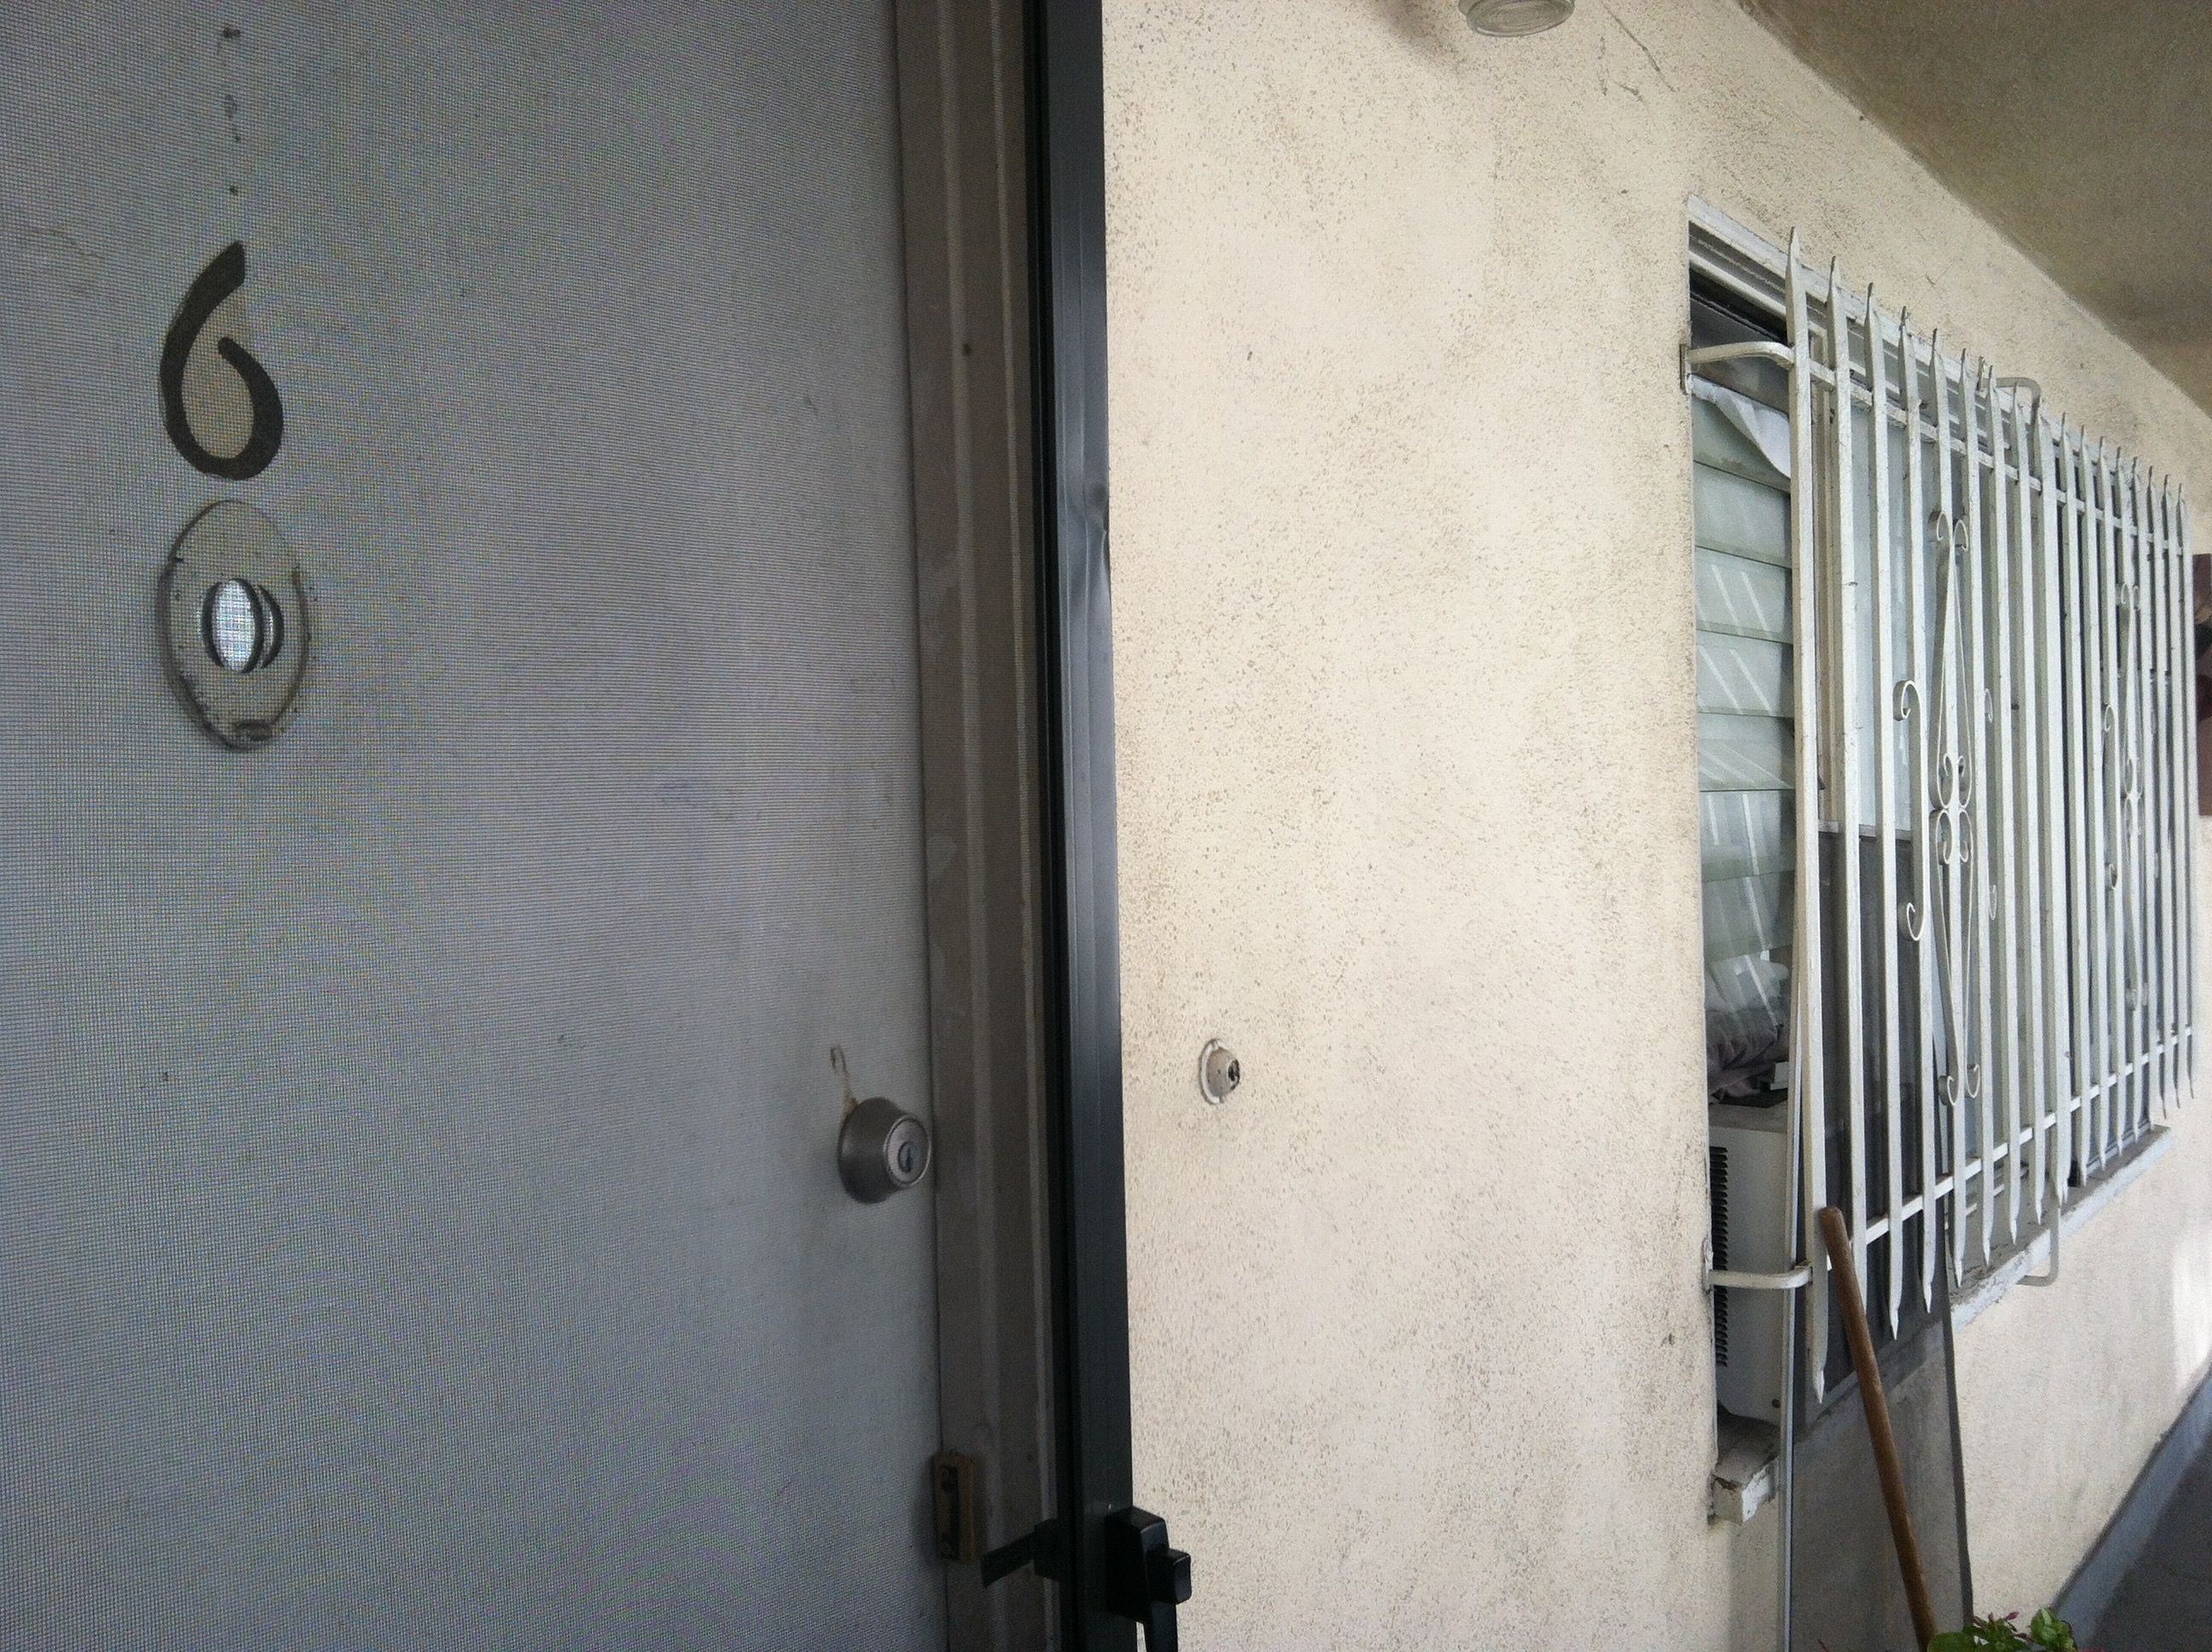 sept 17 - apartment 6 ac unit with bars on window | Hawthorn Ave ...